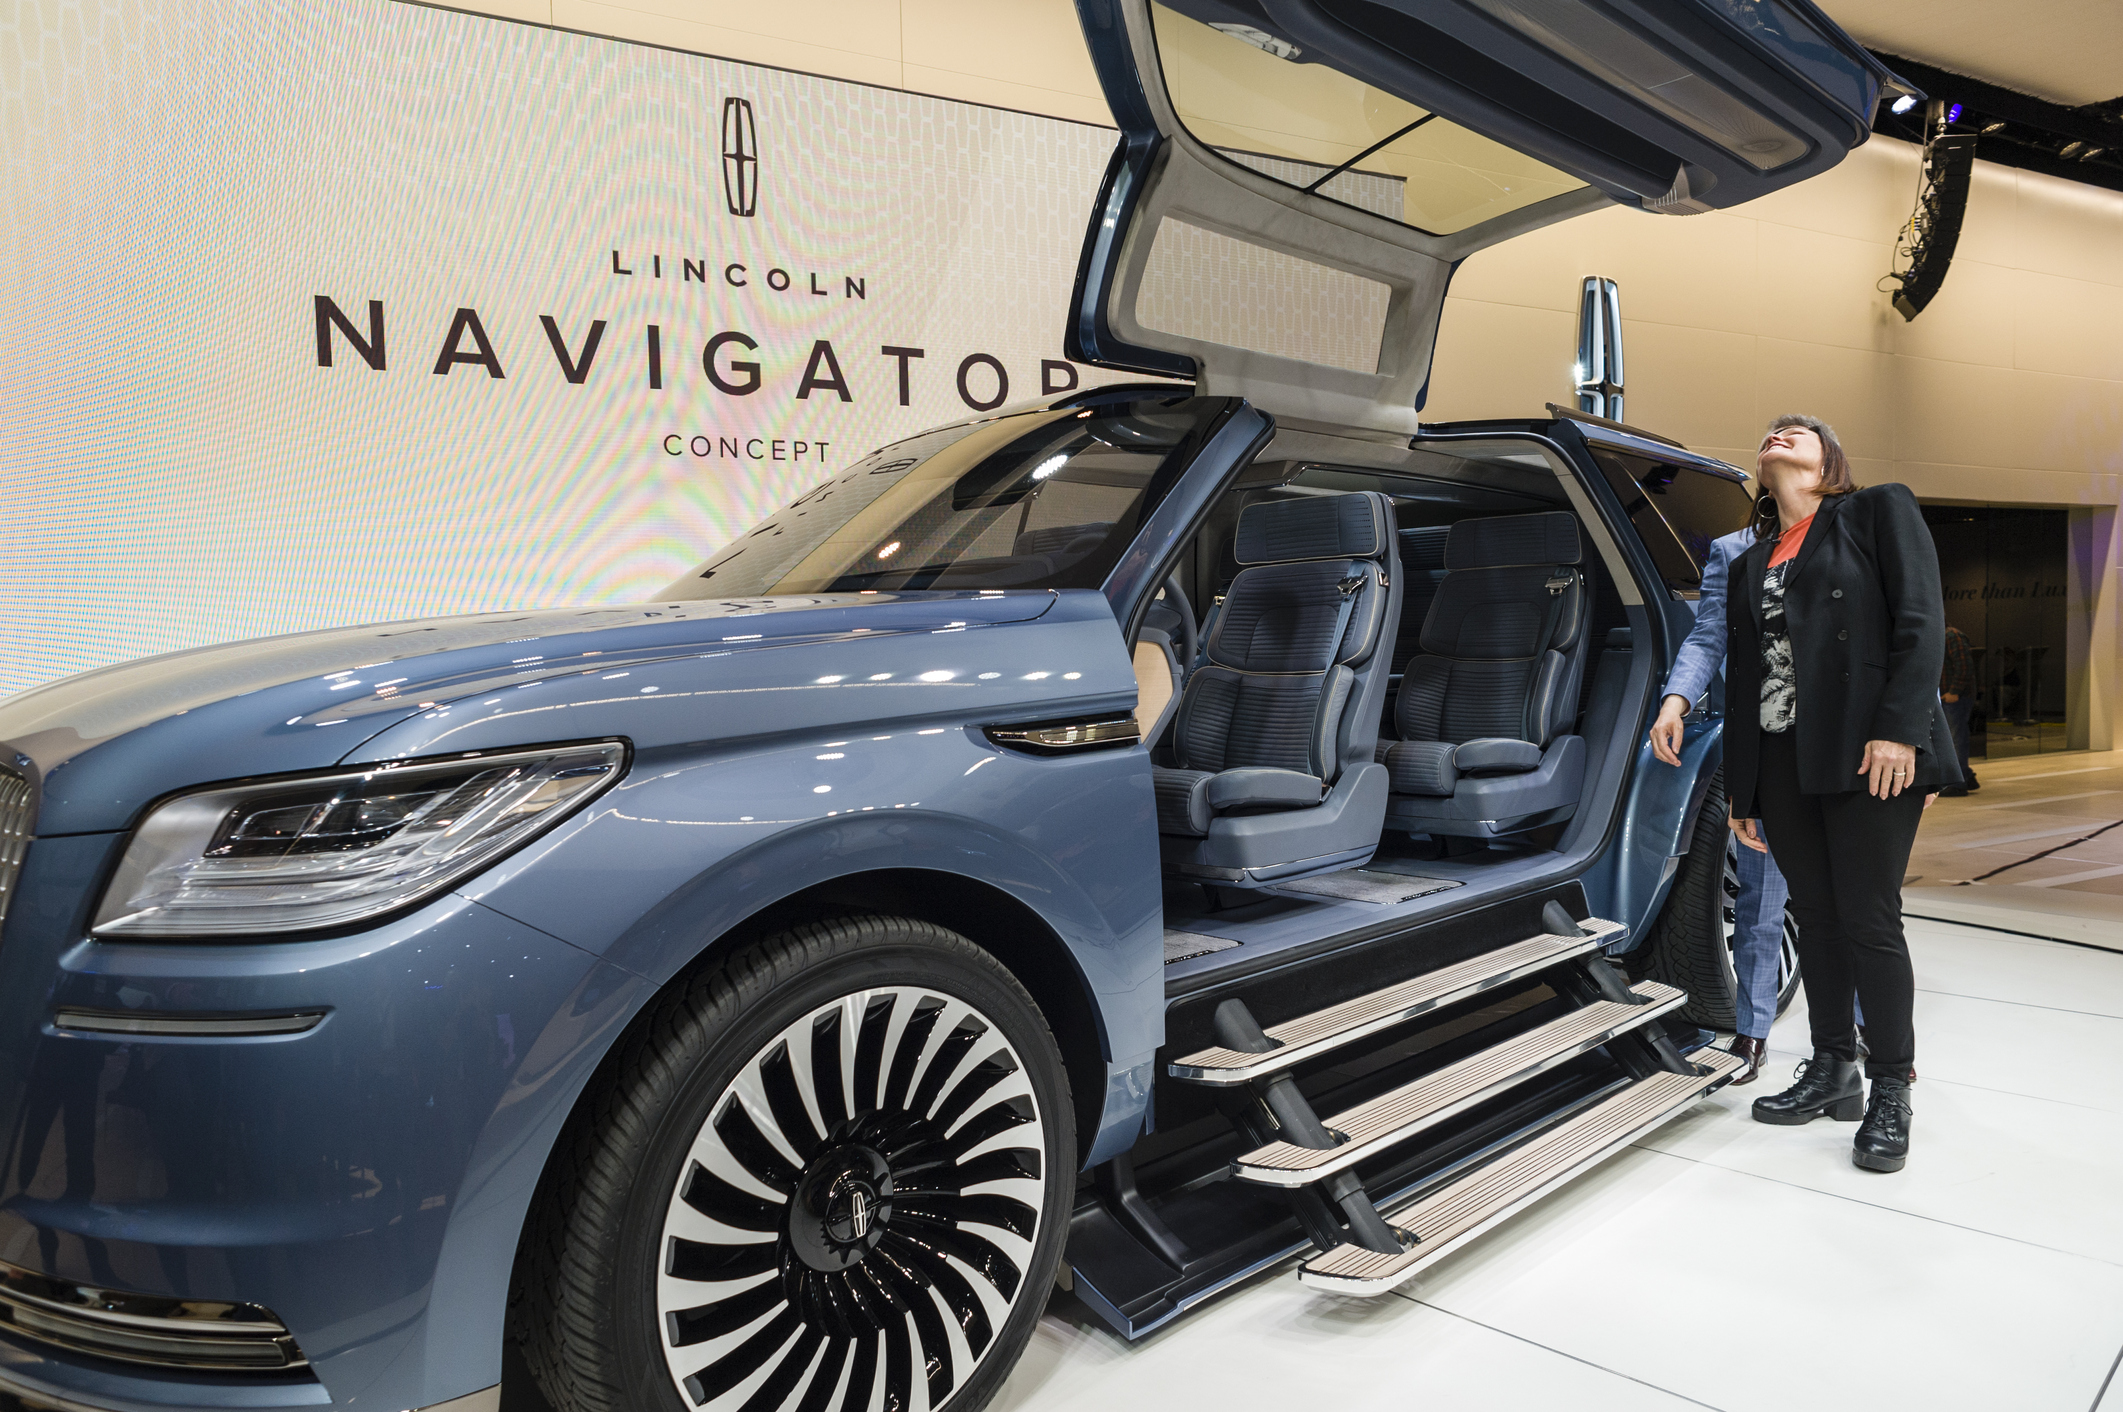 Lincoln's $95,000 Special Edition 2018 Navigator Is Luxury on Steroids - TheStreet